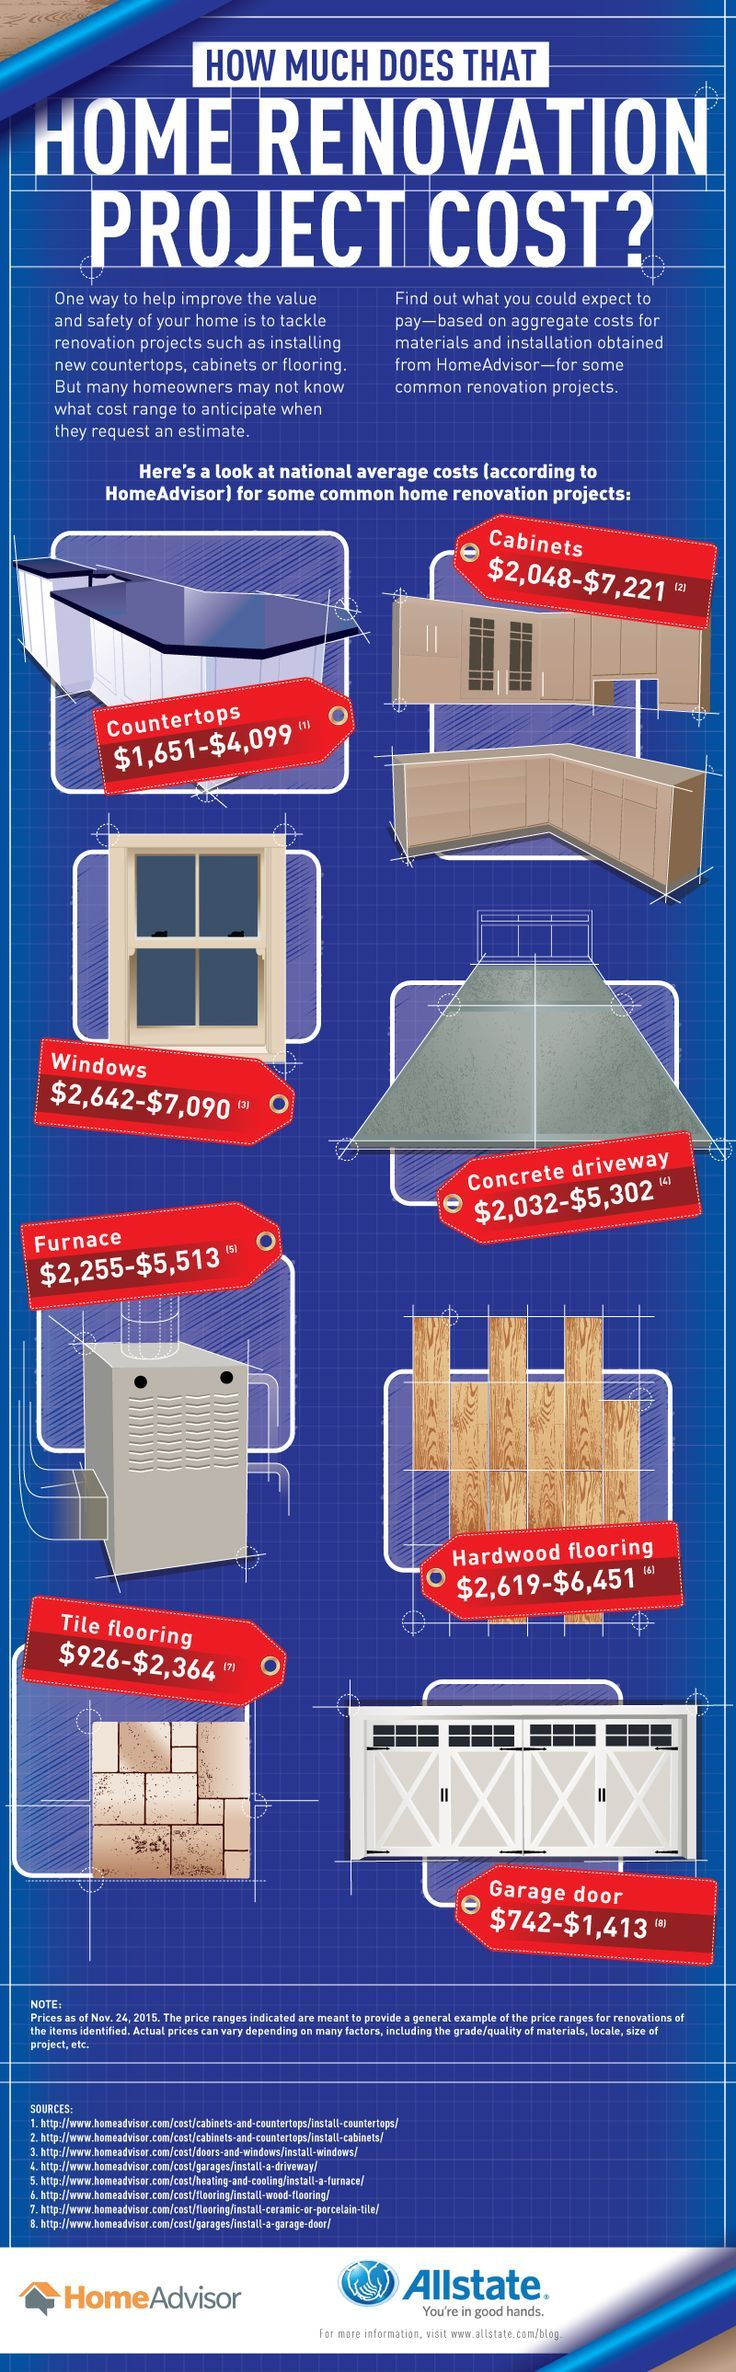 If you are a first-time homeowner, you might be unfamiliar with the cost of some common home renovation projects. Before you consider moving forward, check out this infographic based on information provided by Home Advisor to find out how much these home improvement projects could potentially set you and your pocketbook back.